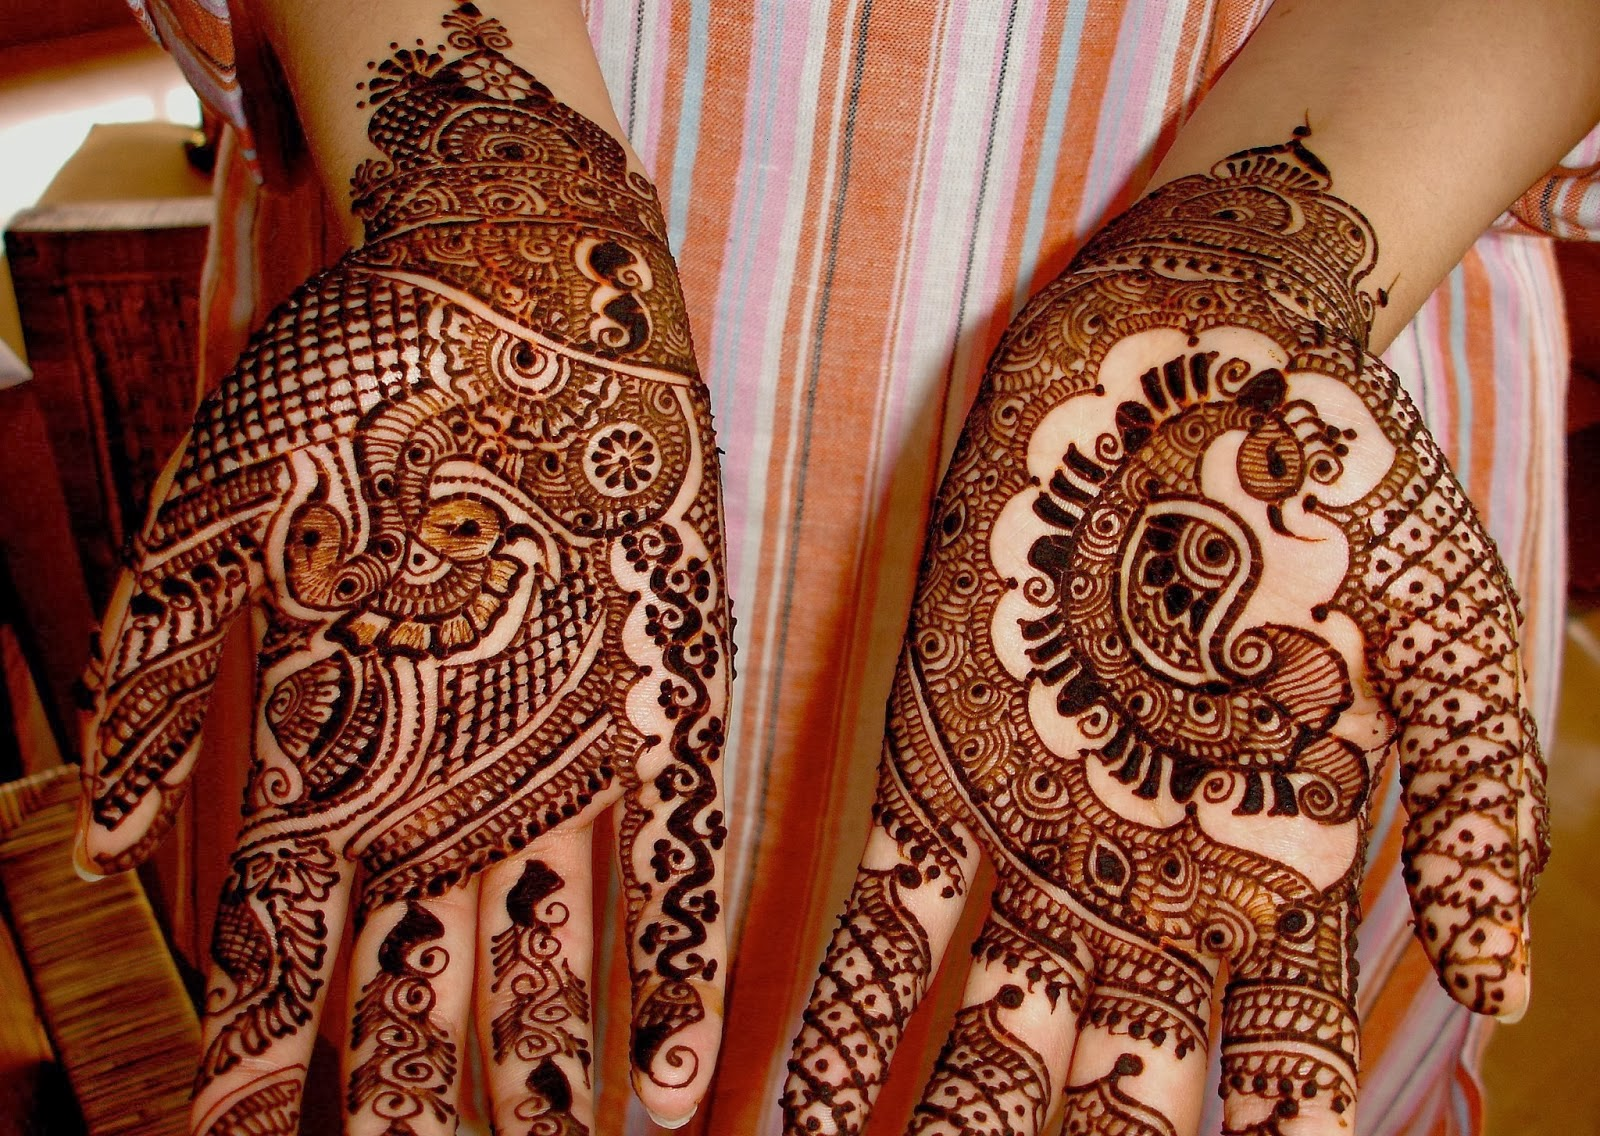 Mehndi design 2017 app download - Cool Very Very Very Best App L Just Loooooooooove It Here We Provide Arabic Mehndi Designs 2017 V 5 For Android 403 Arabian Mehndi Design Is A Handpicked